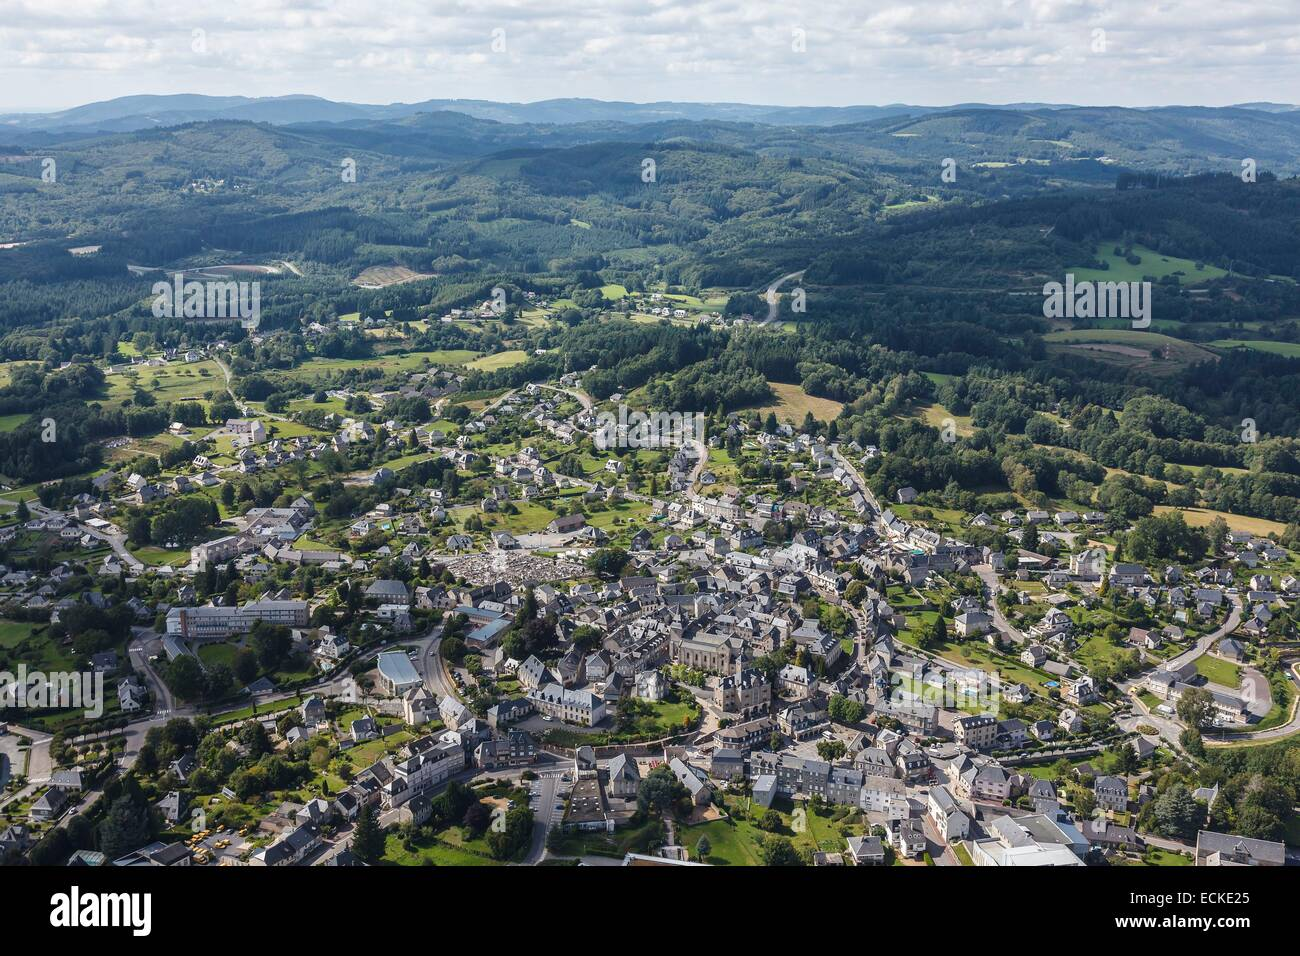 France, Correze, Egletons, the town before Limousin hills (aerial view) - Stock Image